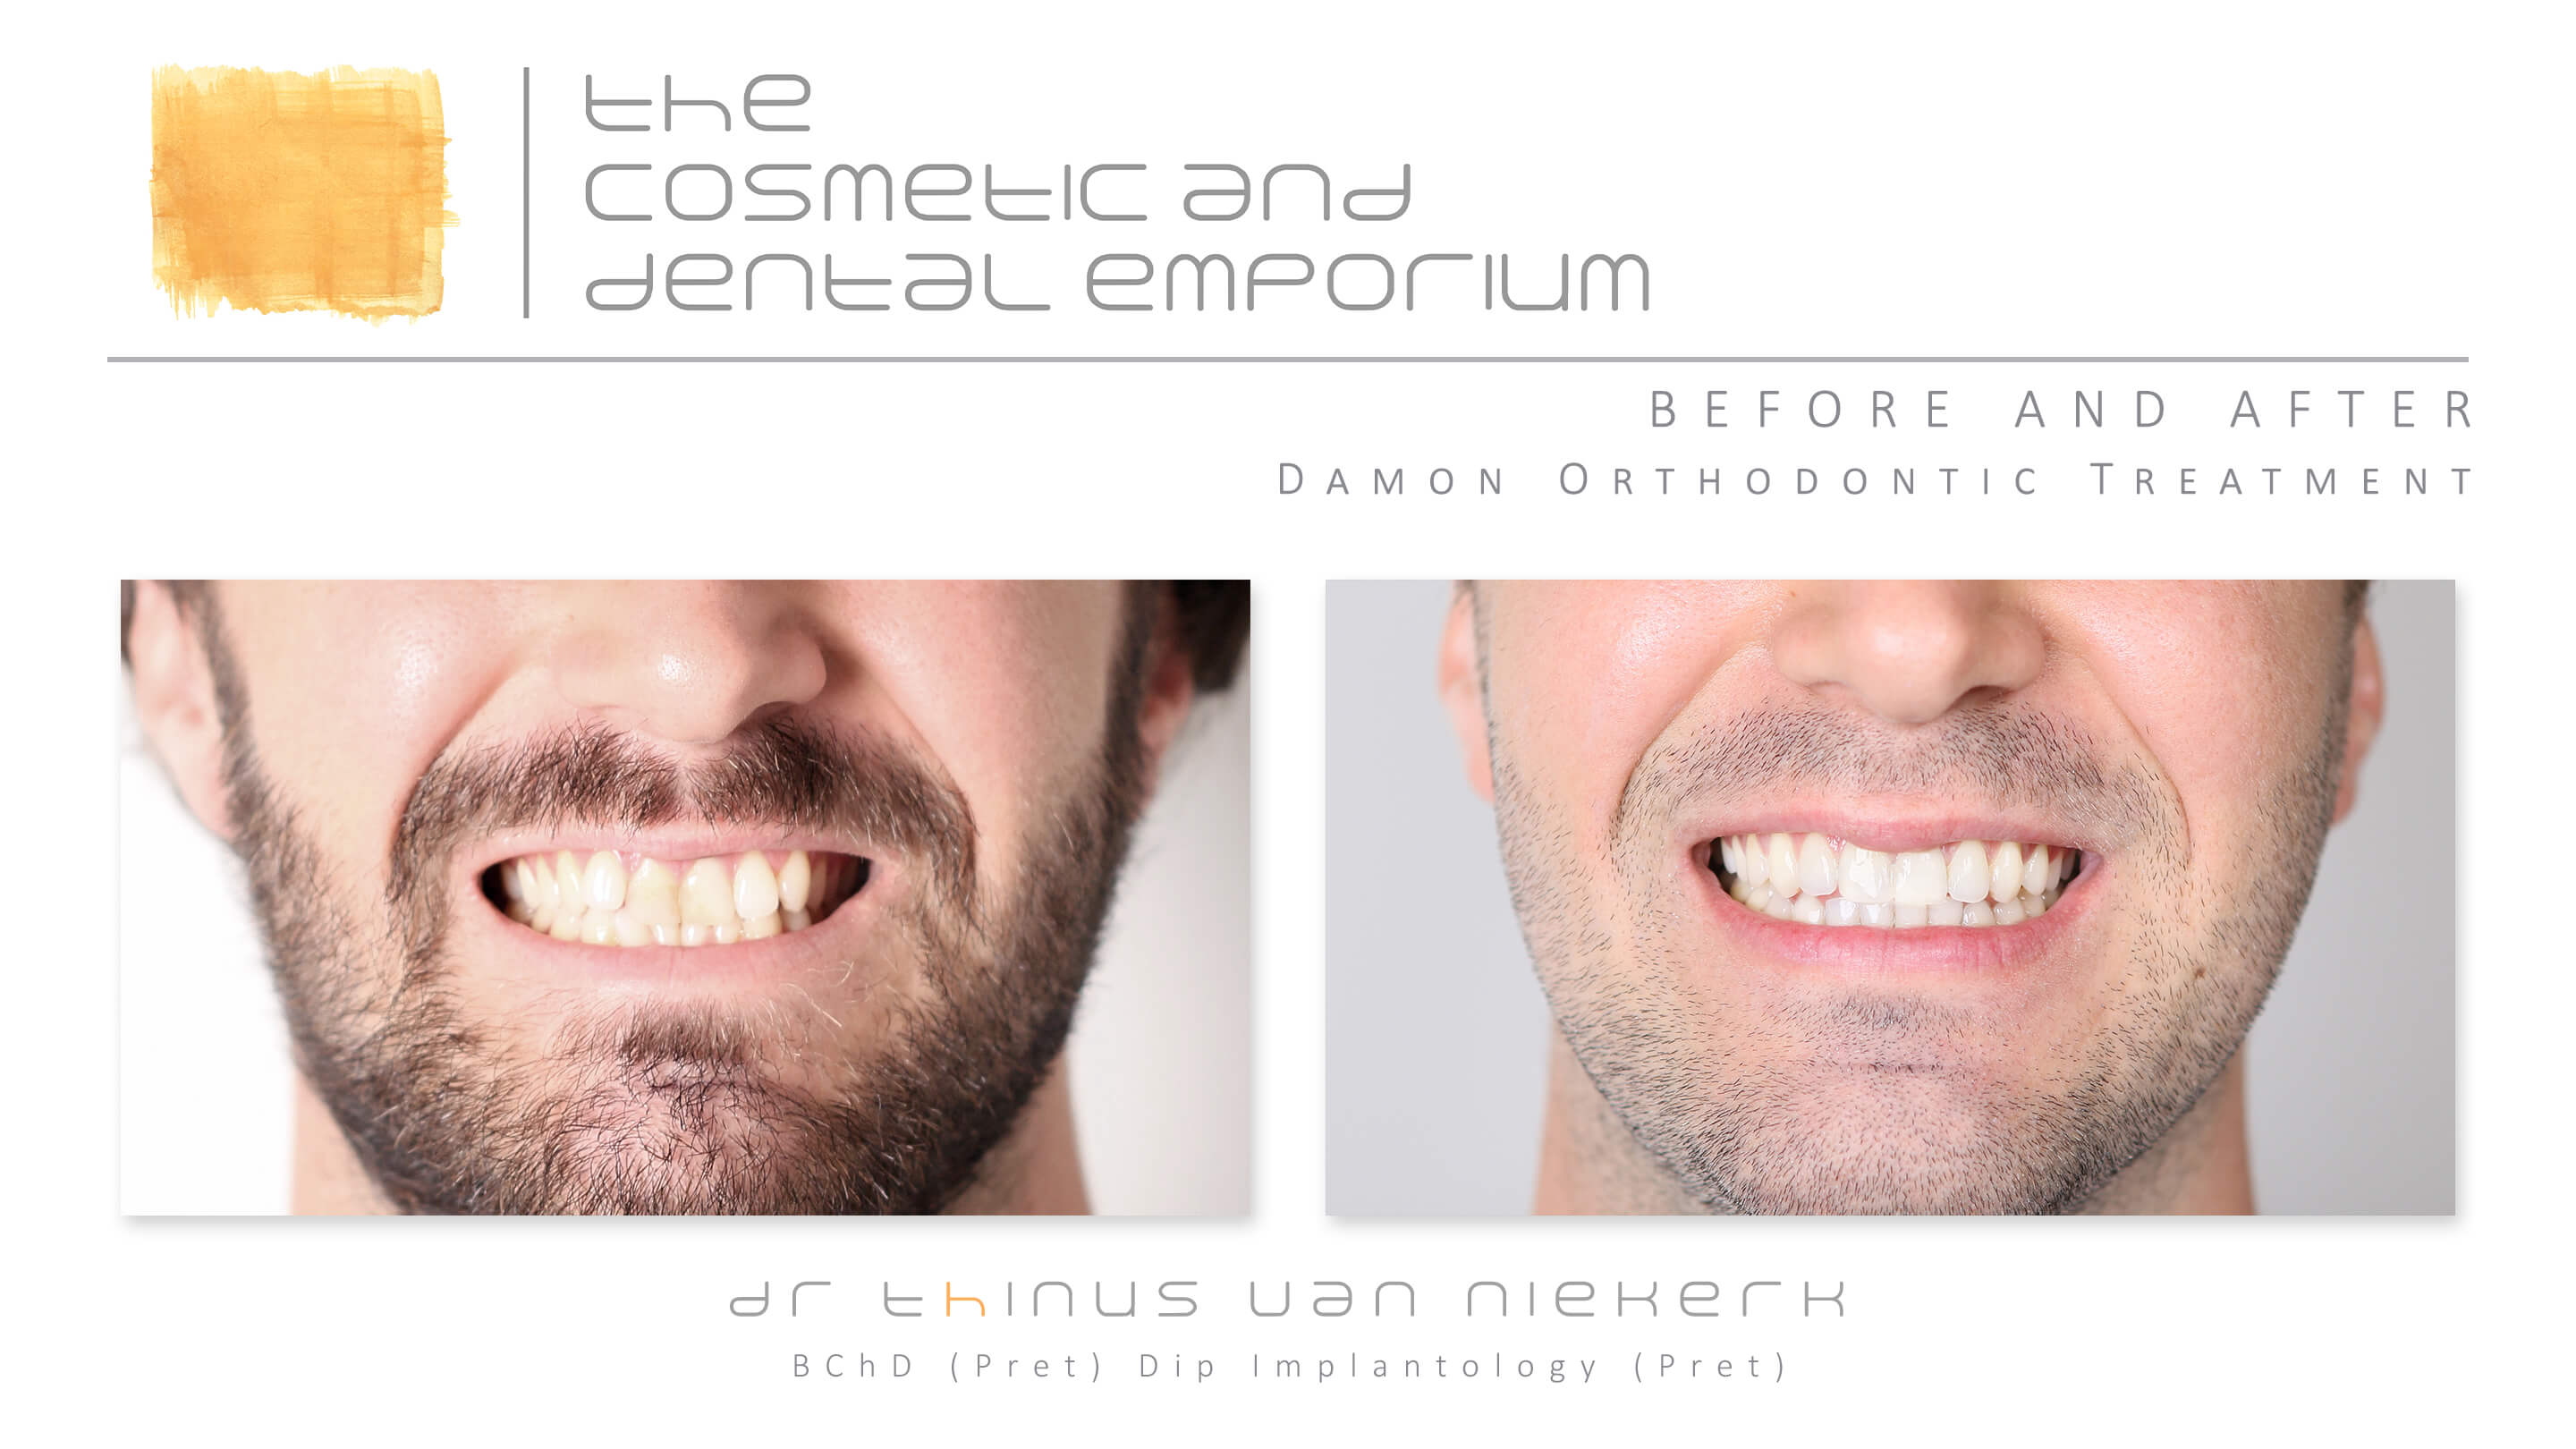 Damon Orthodontics